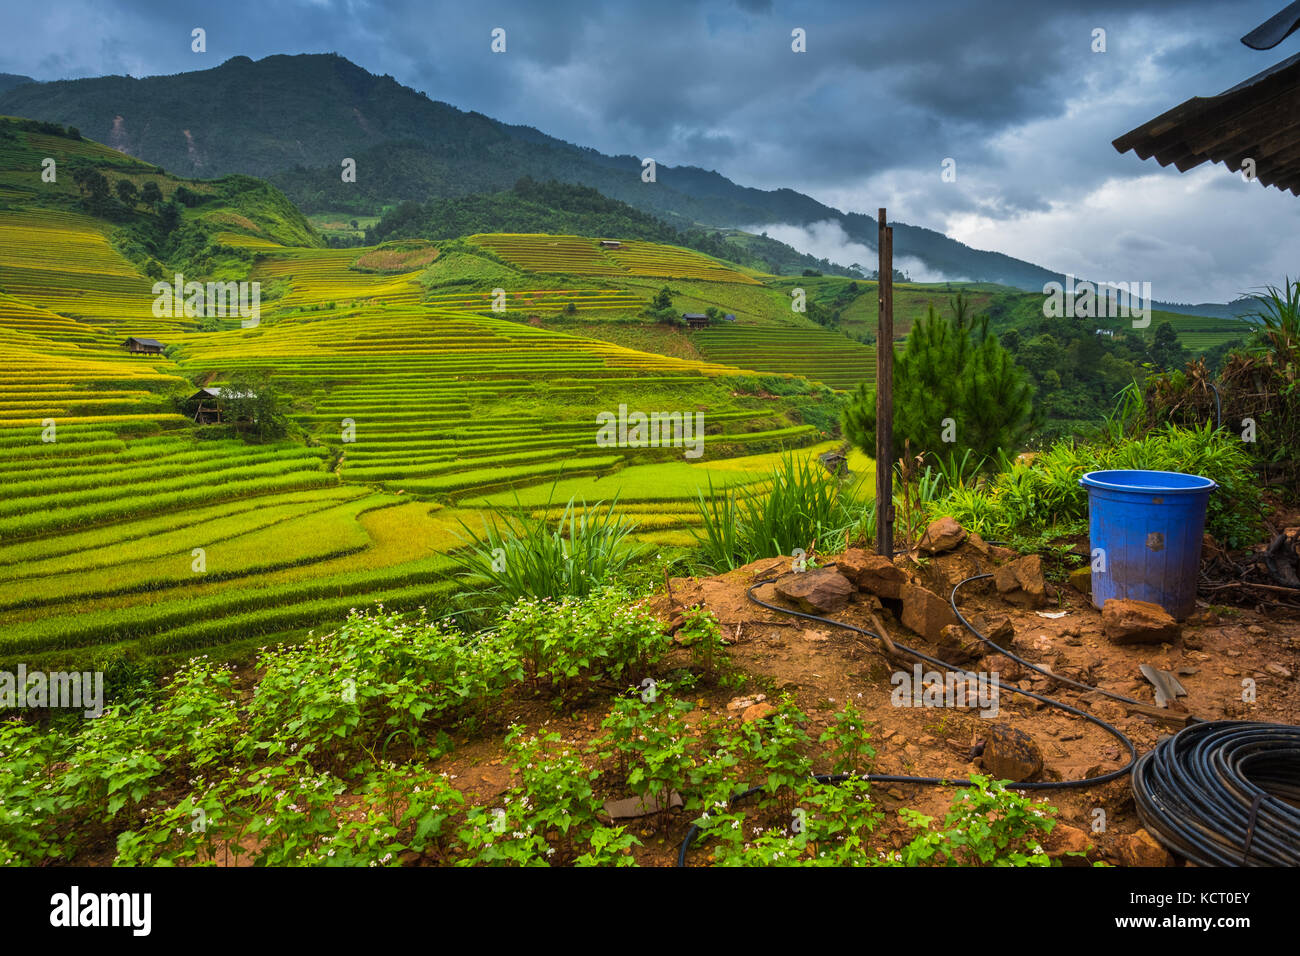 Beautiful landscape of rice terrace fields in Mu Cang Chai, Vietnam - Stock Image